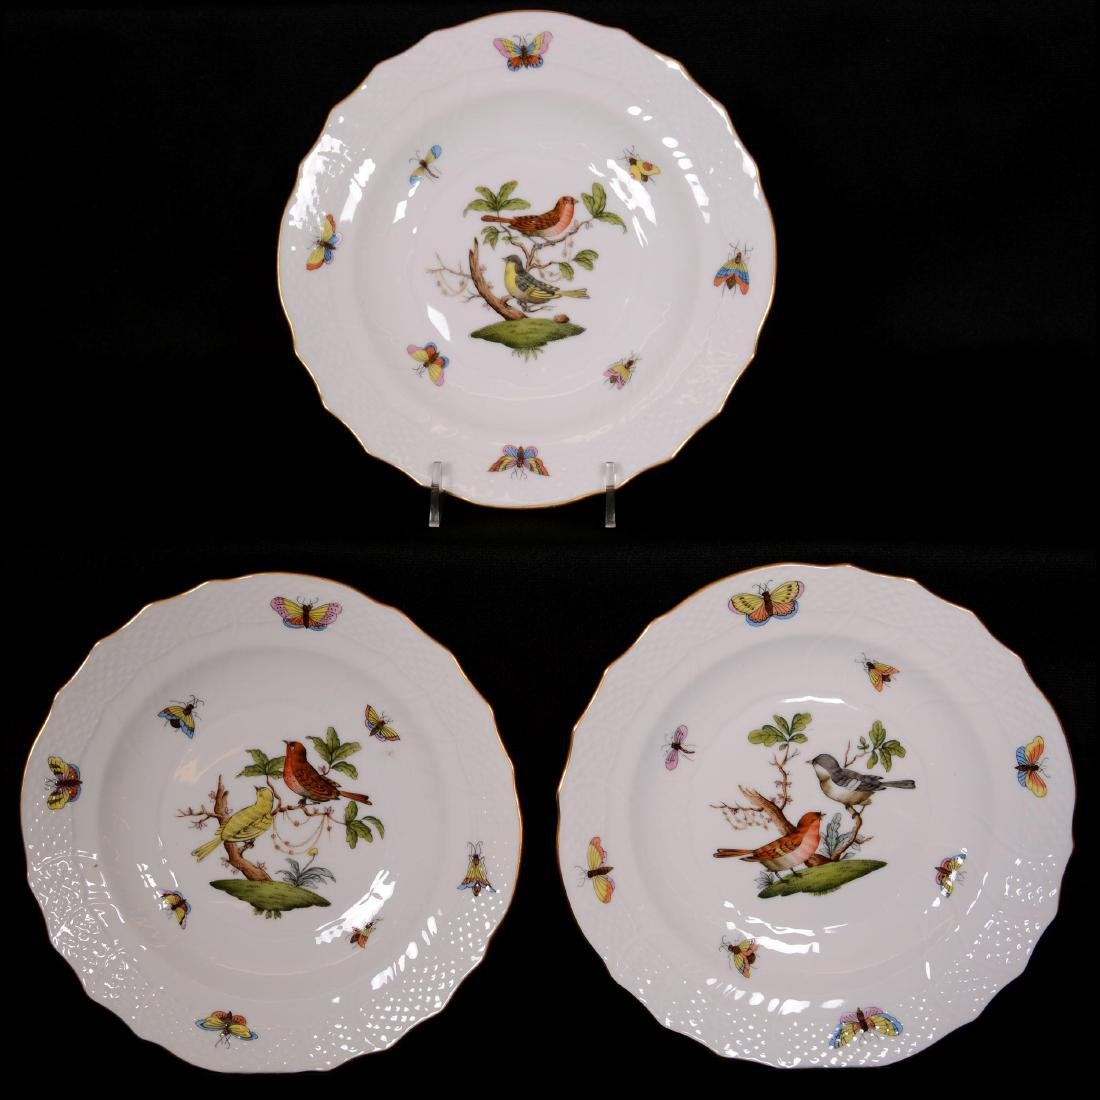 (15) Herend Hungary Porcelain Hand Painted Luncheon Pla - 3